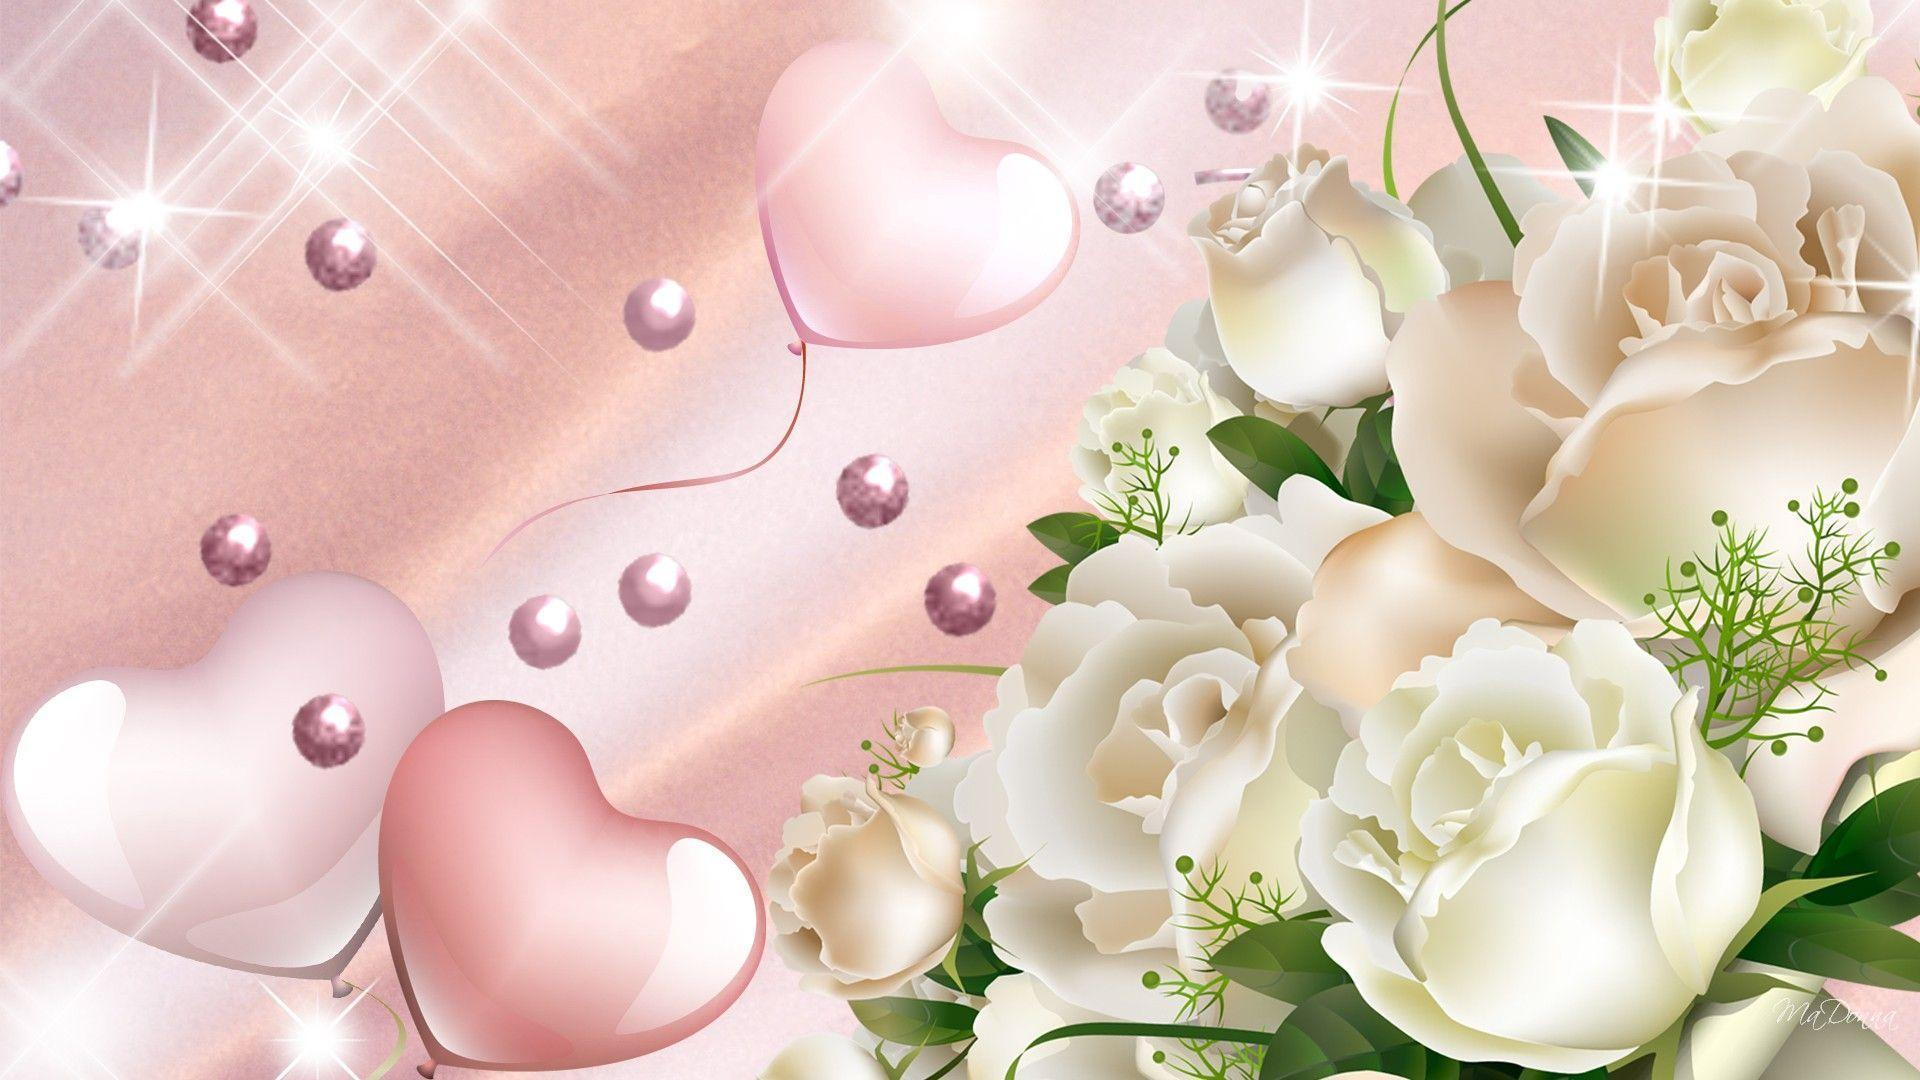 Hearts And Flowers Wallpapers - Wallpaper Cave